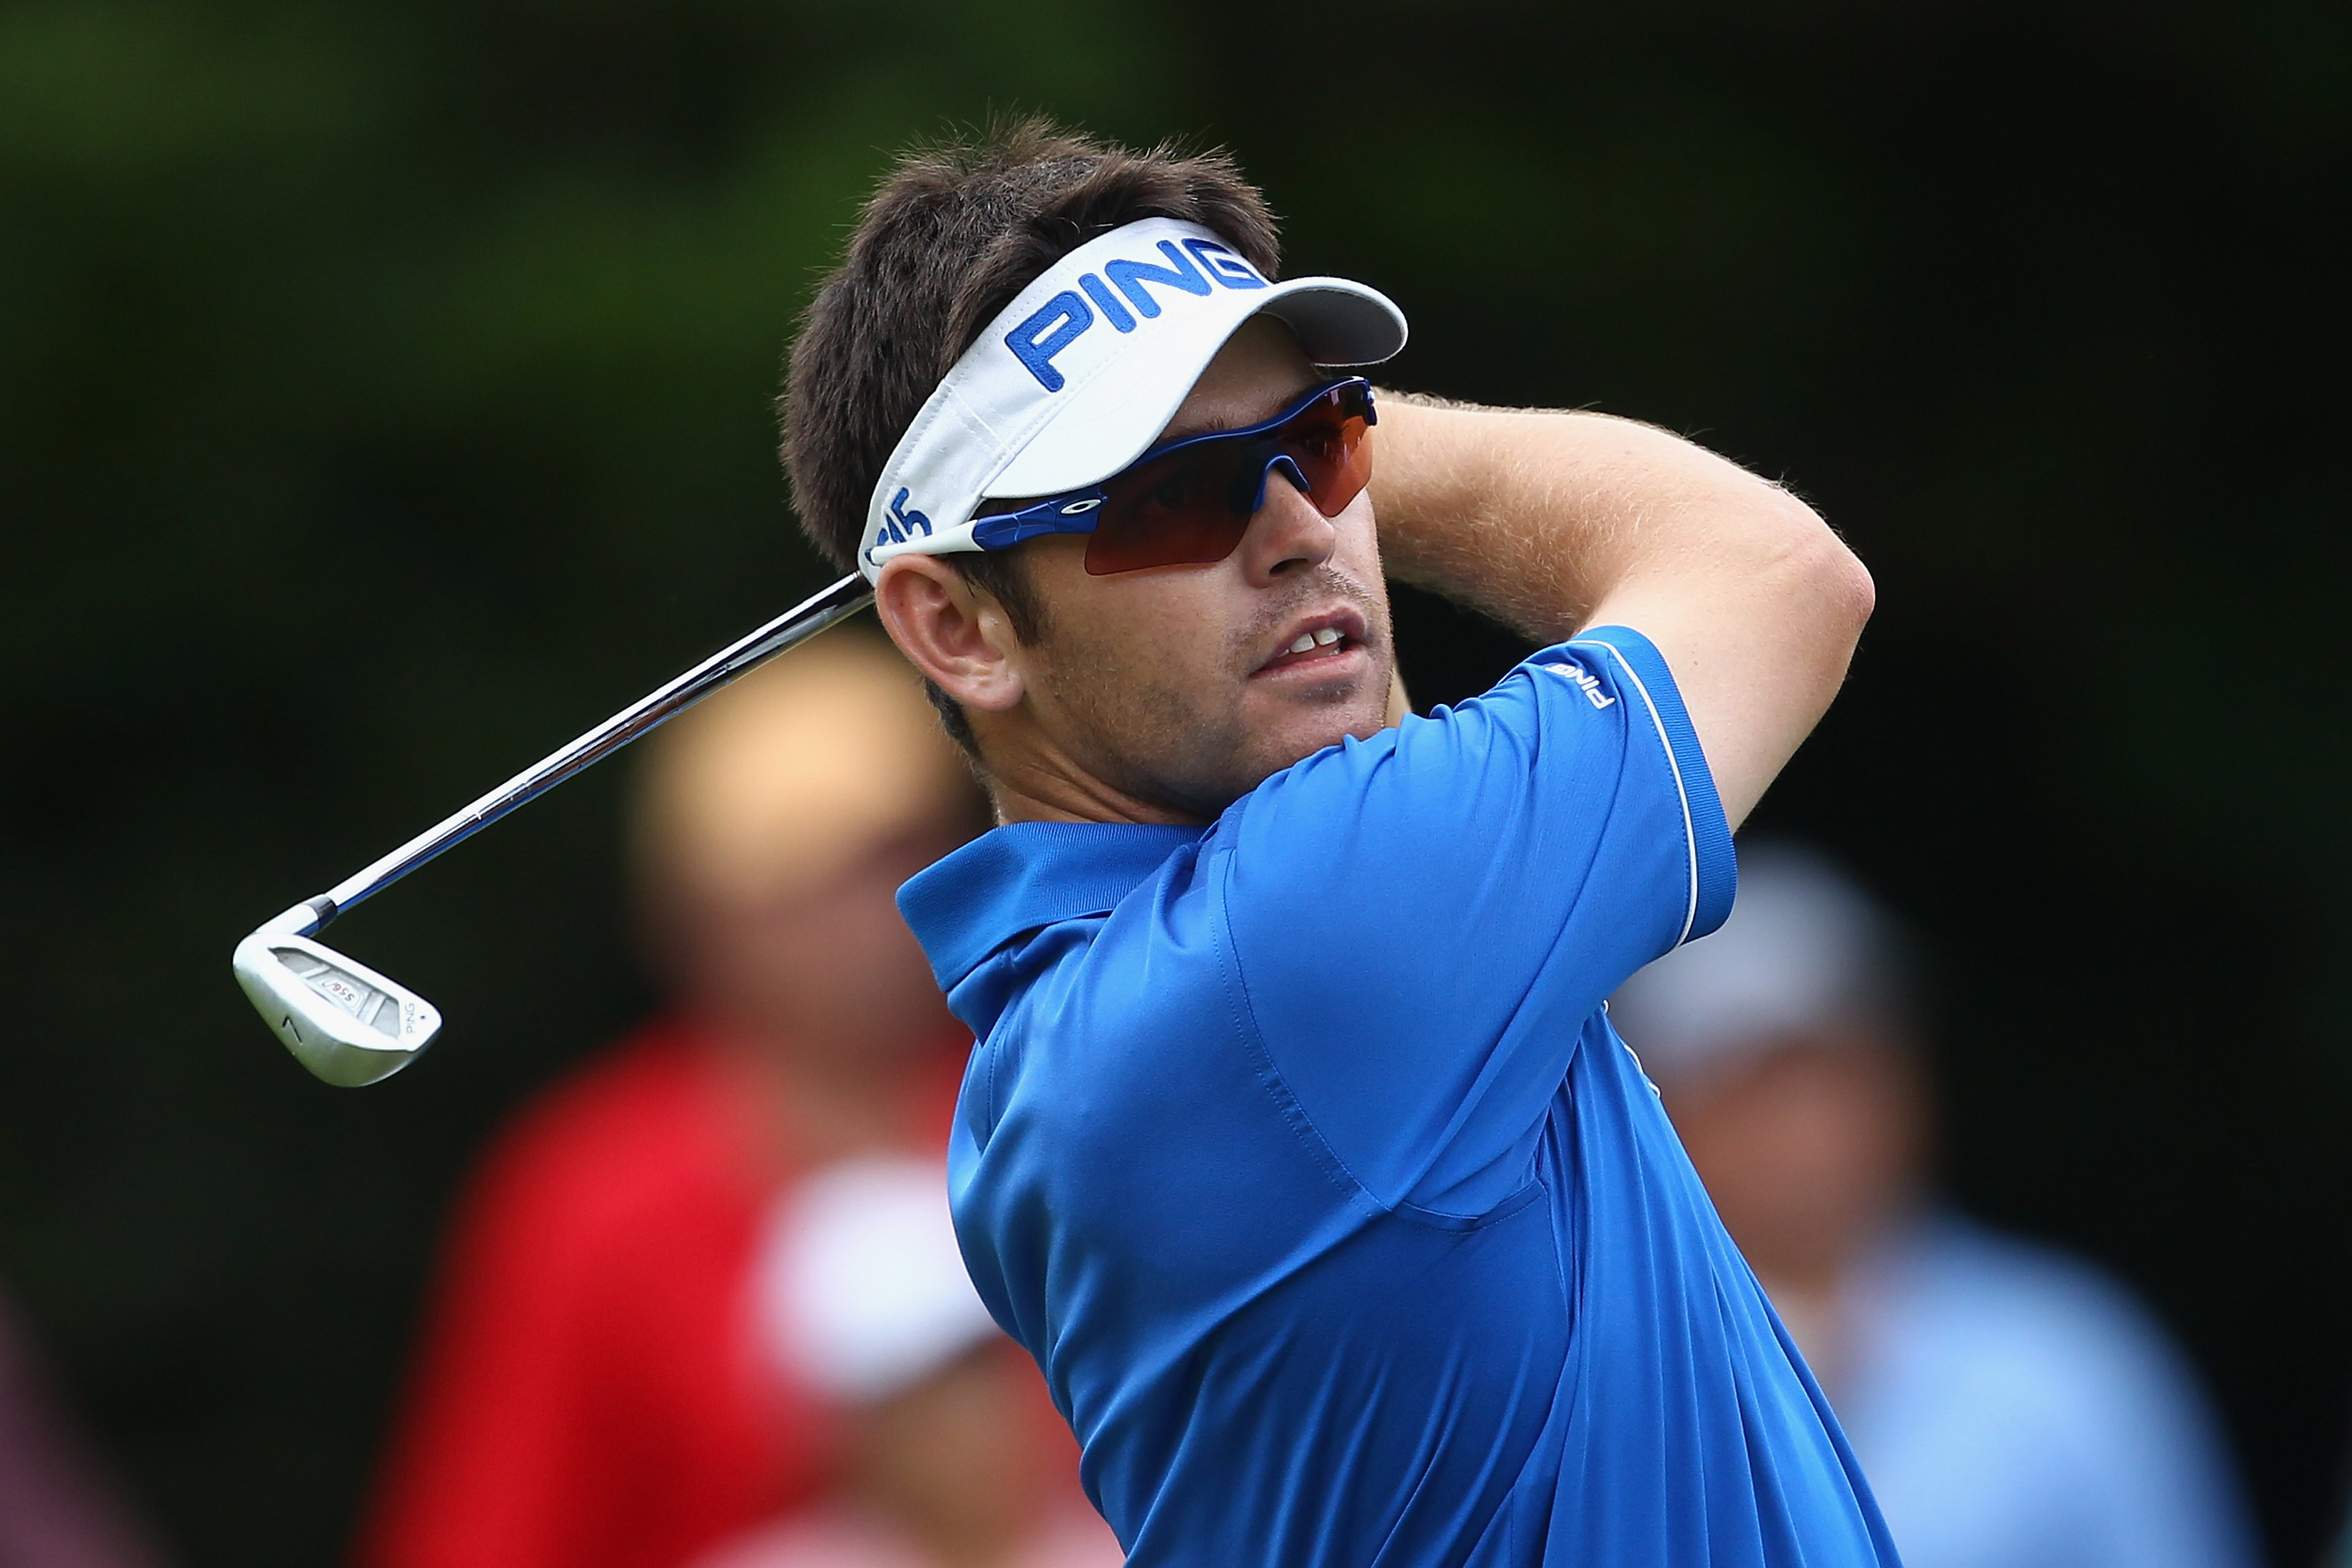 Louis Oosthuizen: His Past, Performance, and Potential For The PGA Tour in 2011